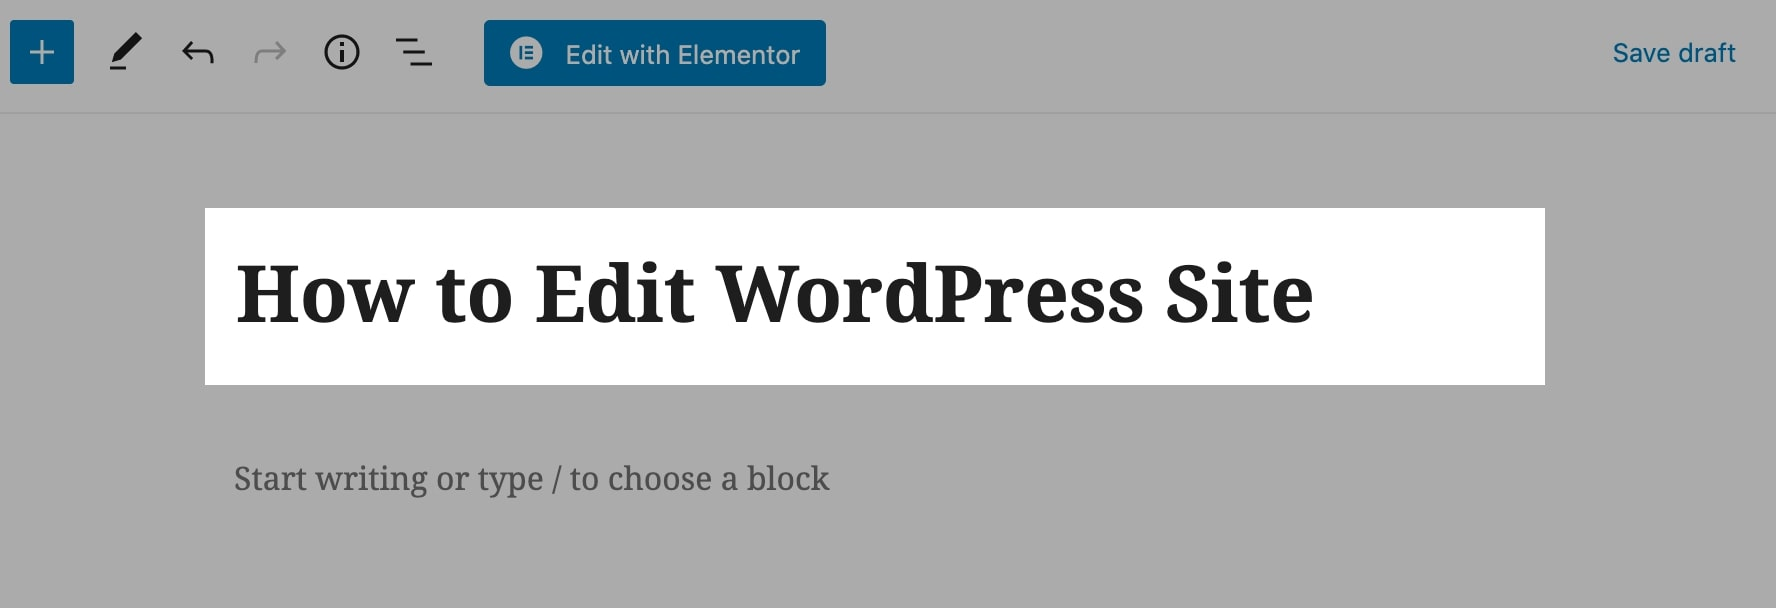 how to edit wordpress site